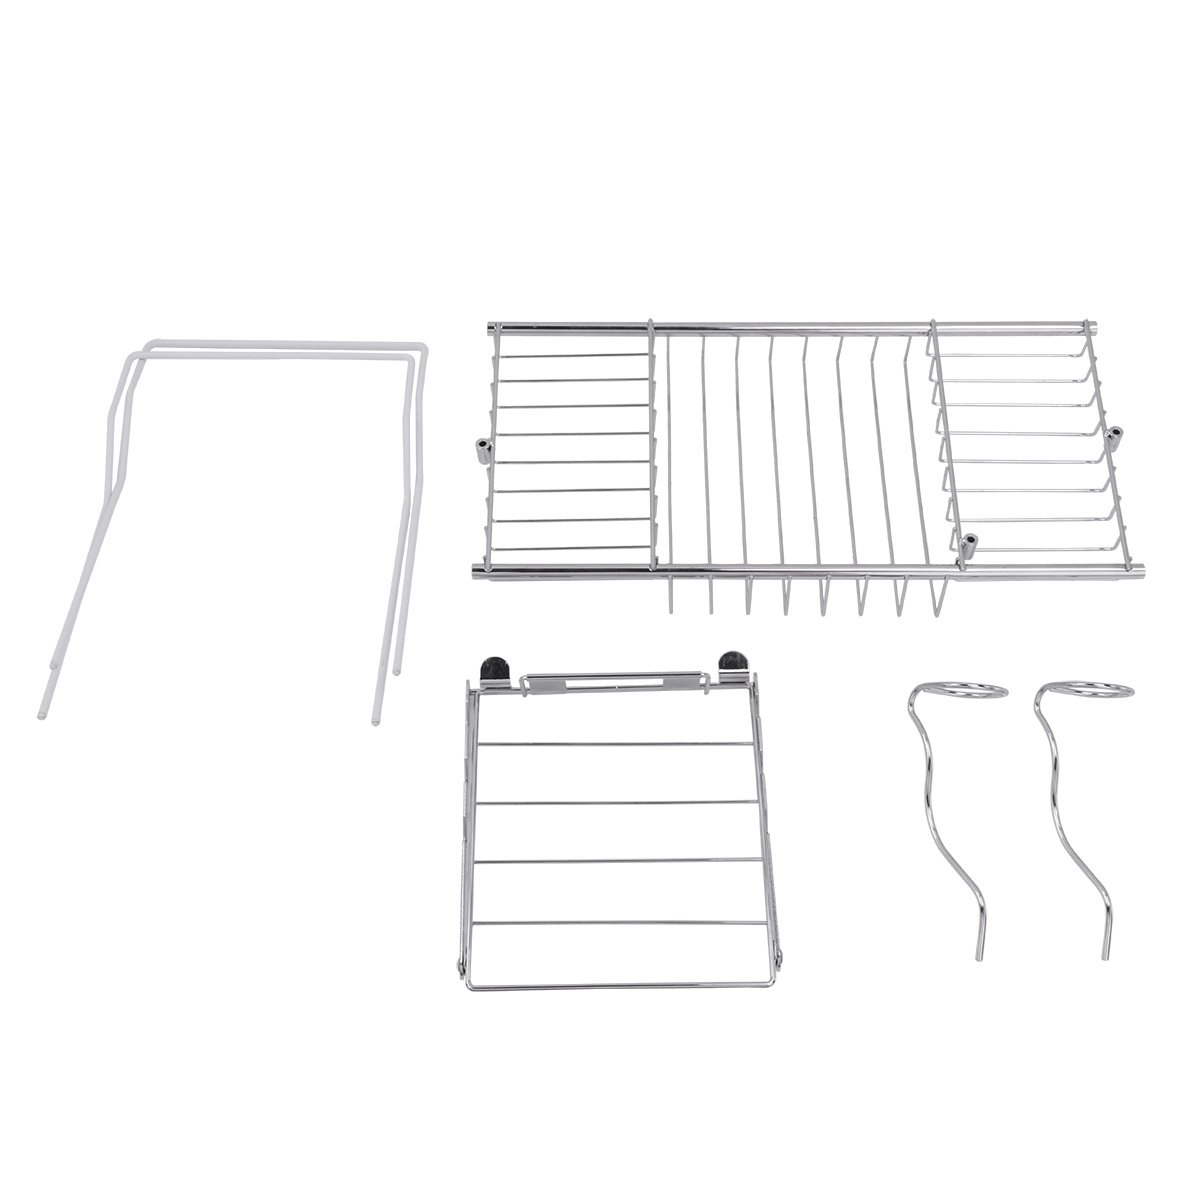 CHICTRY Stainless Steel Bathtub Caddy Tray Over Bath Tub Racks Anti-Rust Bath Tray with Extending Sides Removable Wine Glass Holders and Book Holder Set